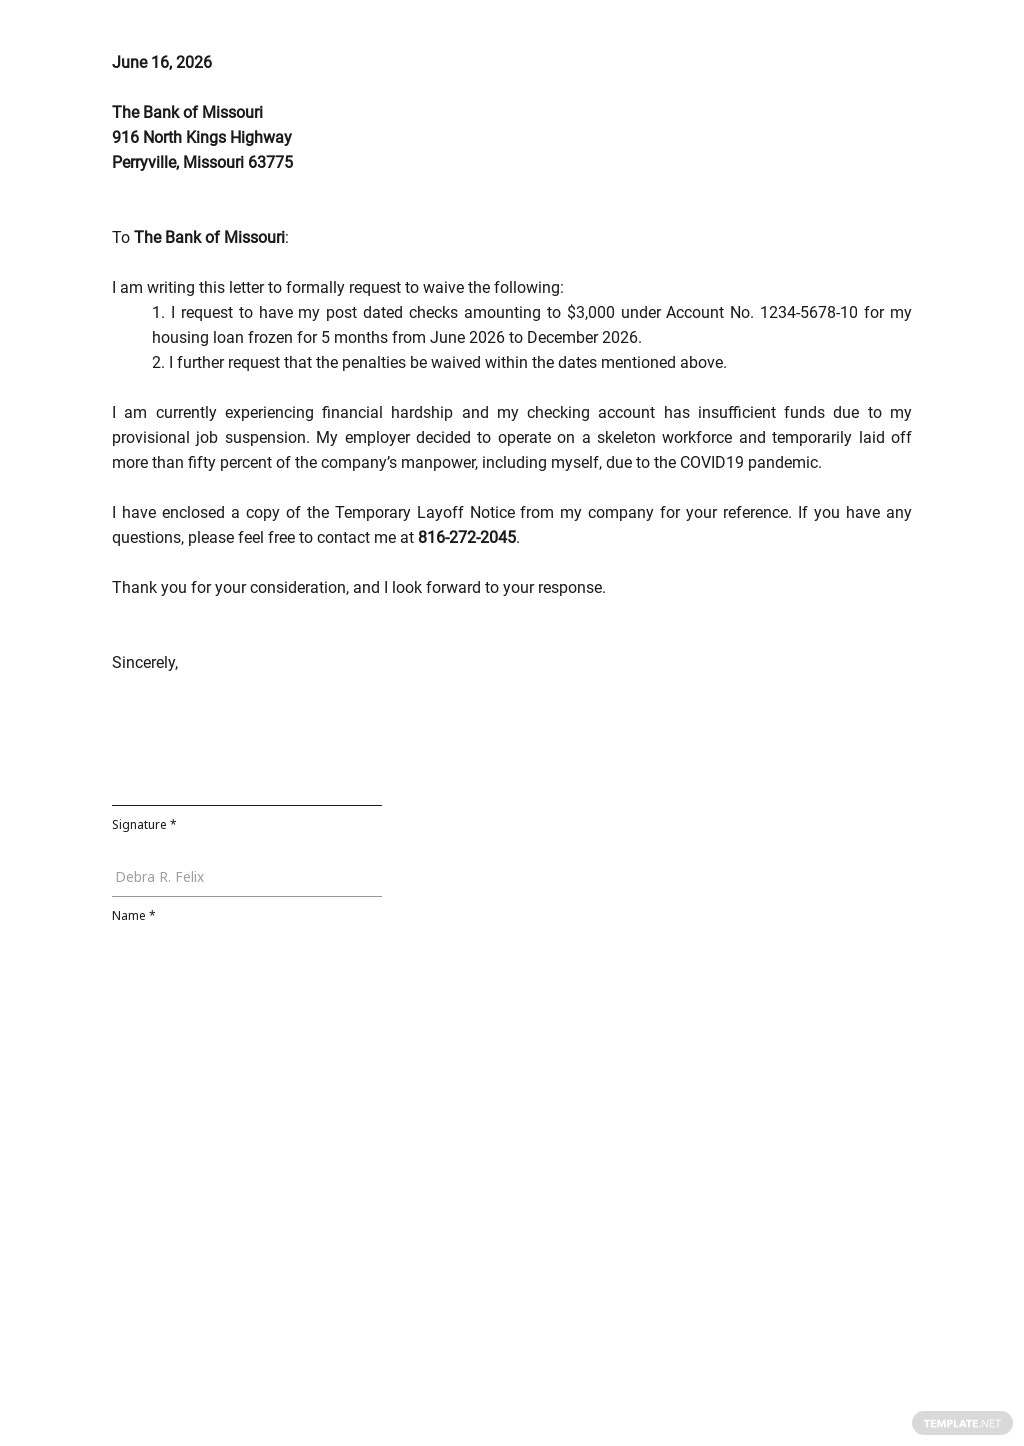 Waiver Of Payment Letter Template.jpe